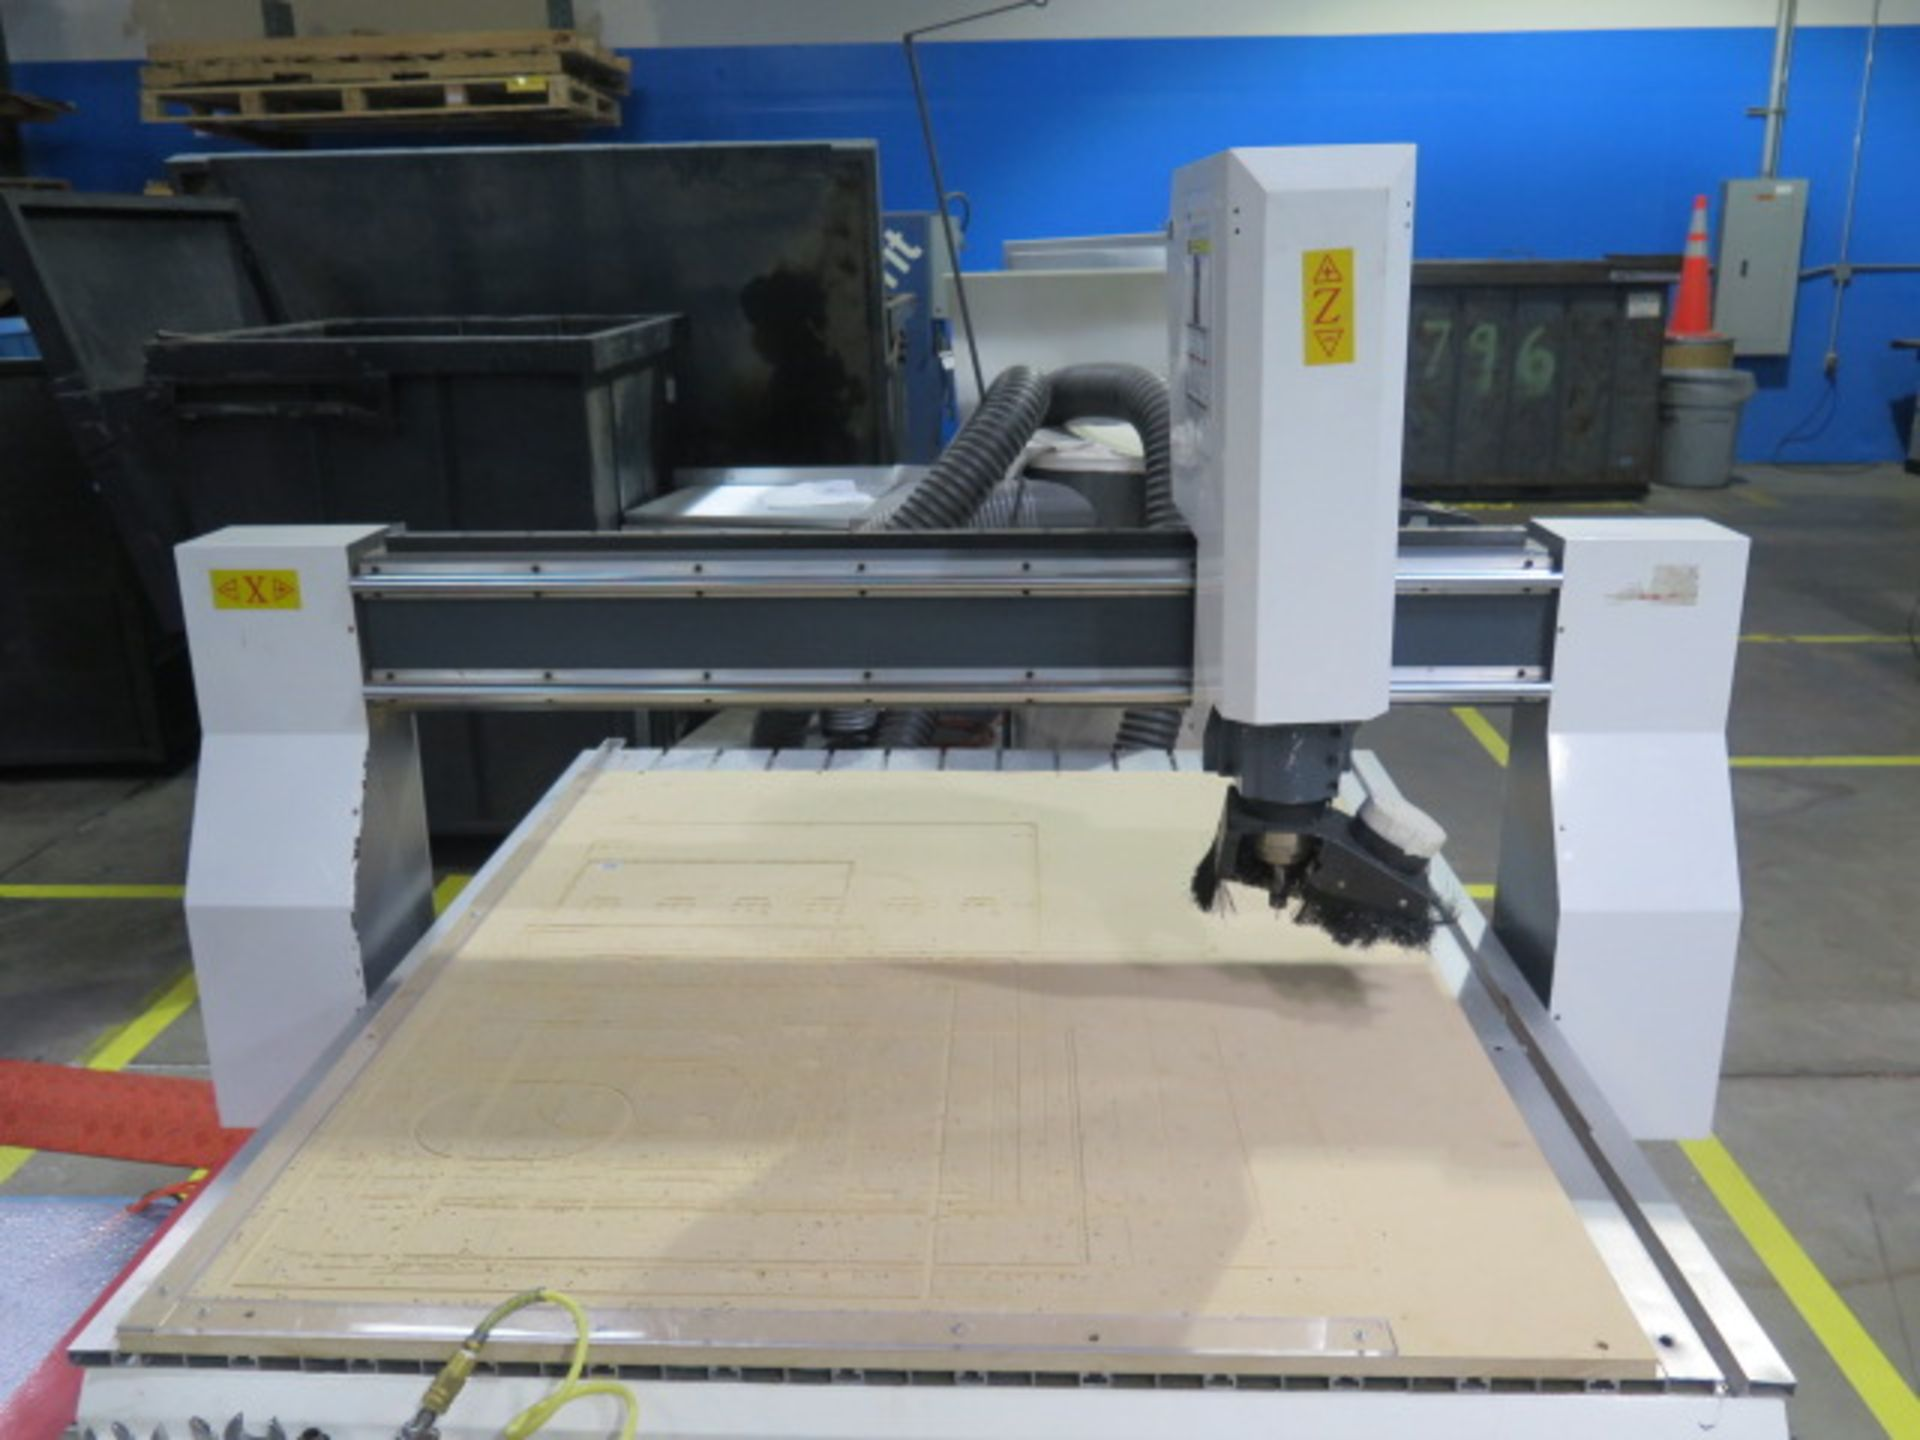 """Industrial CNC """"Mach 3"""" 48"""" x 48"""" Pro Series CNC Router w/ """"Mach 3"""" System Software, 48"""" x 48"""" x 12"""" - Image 3 of 12"""